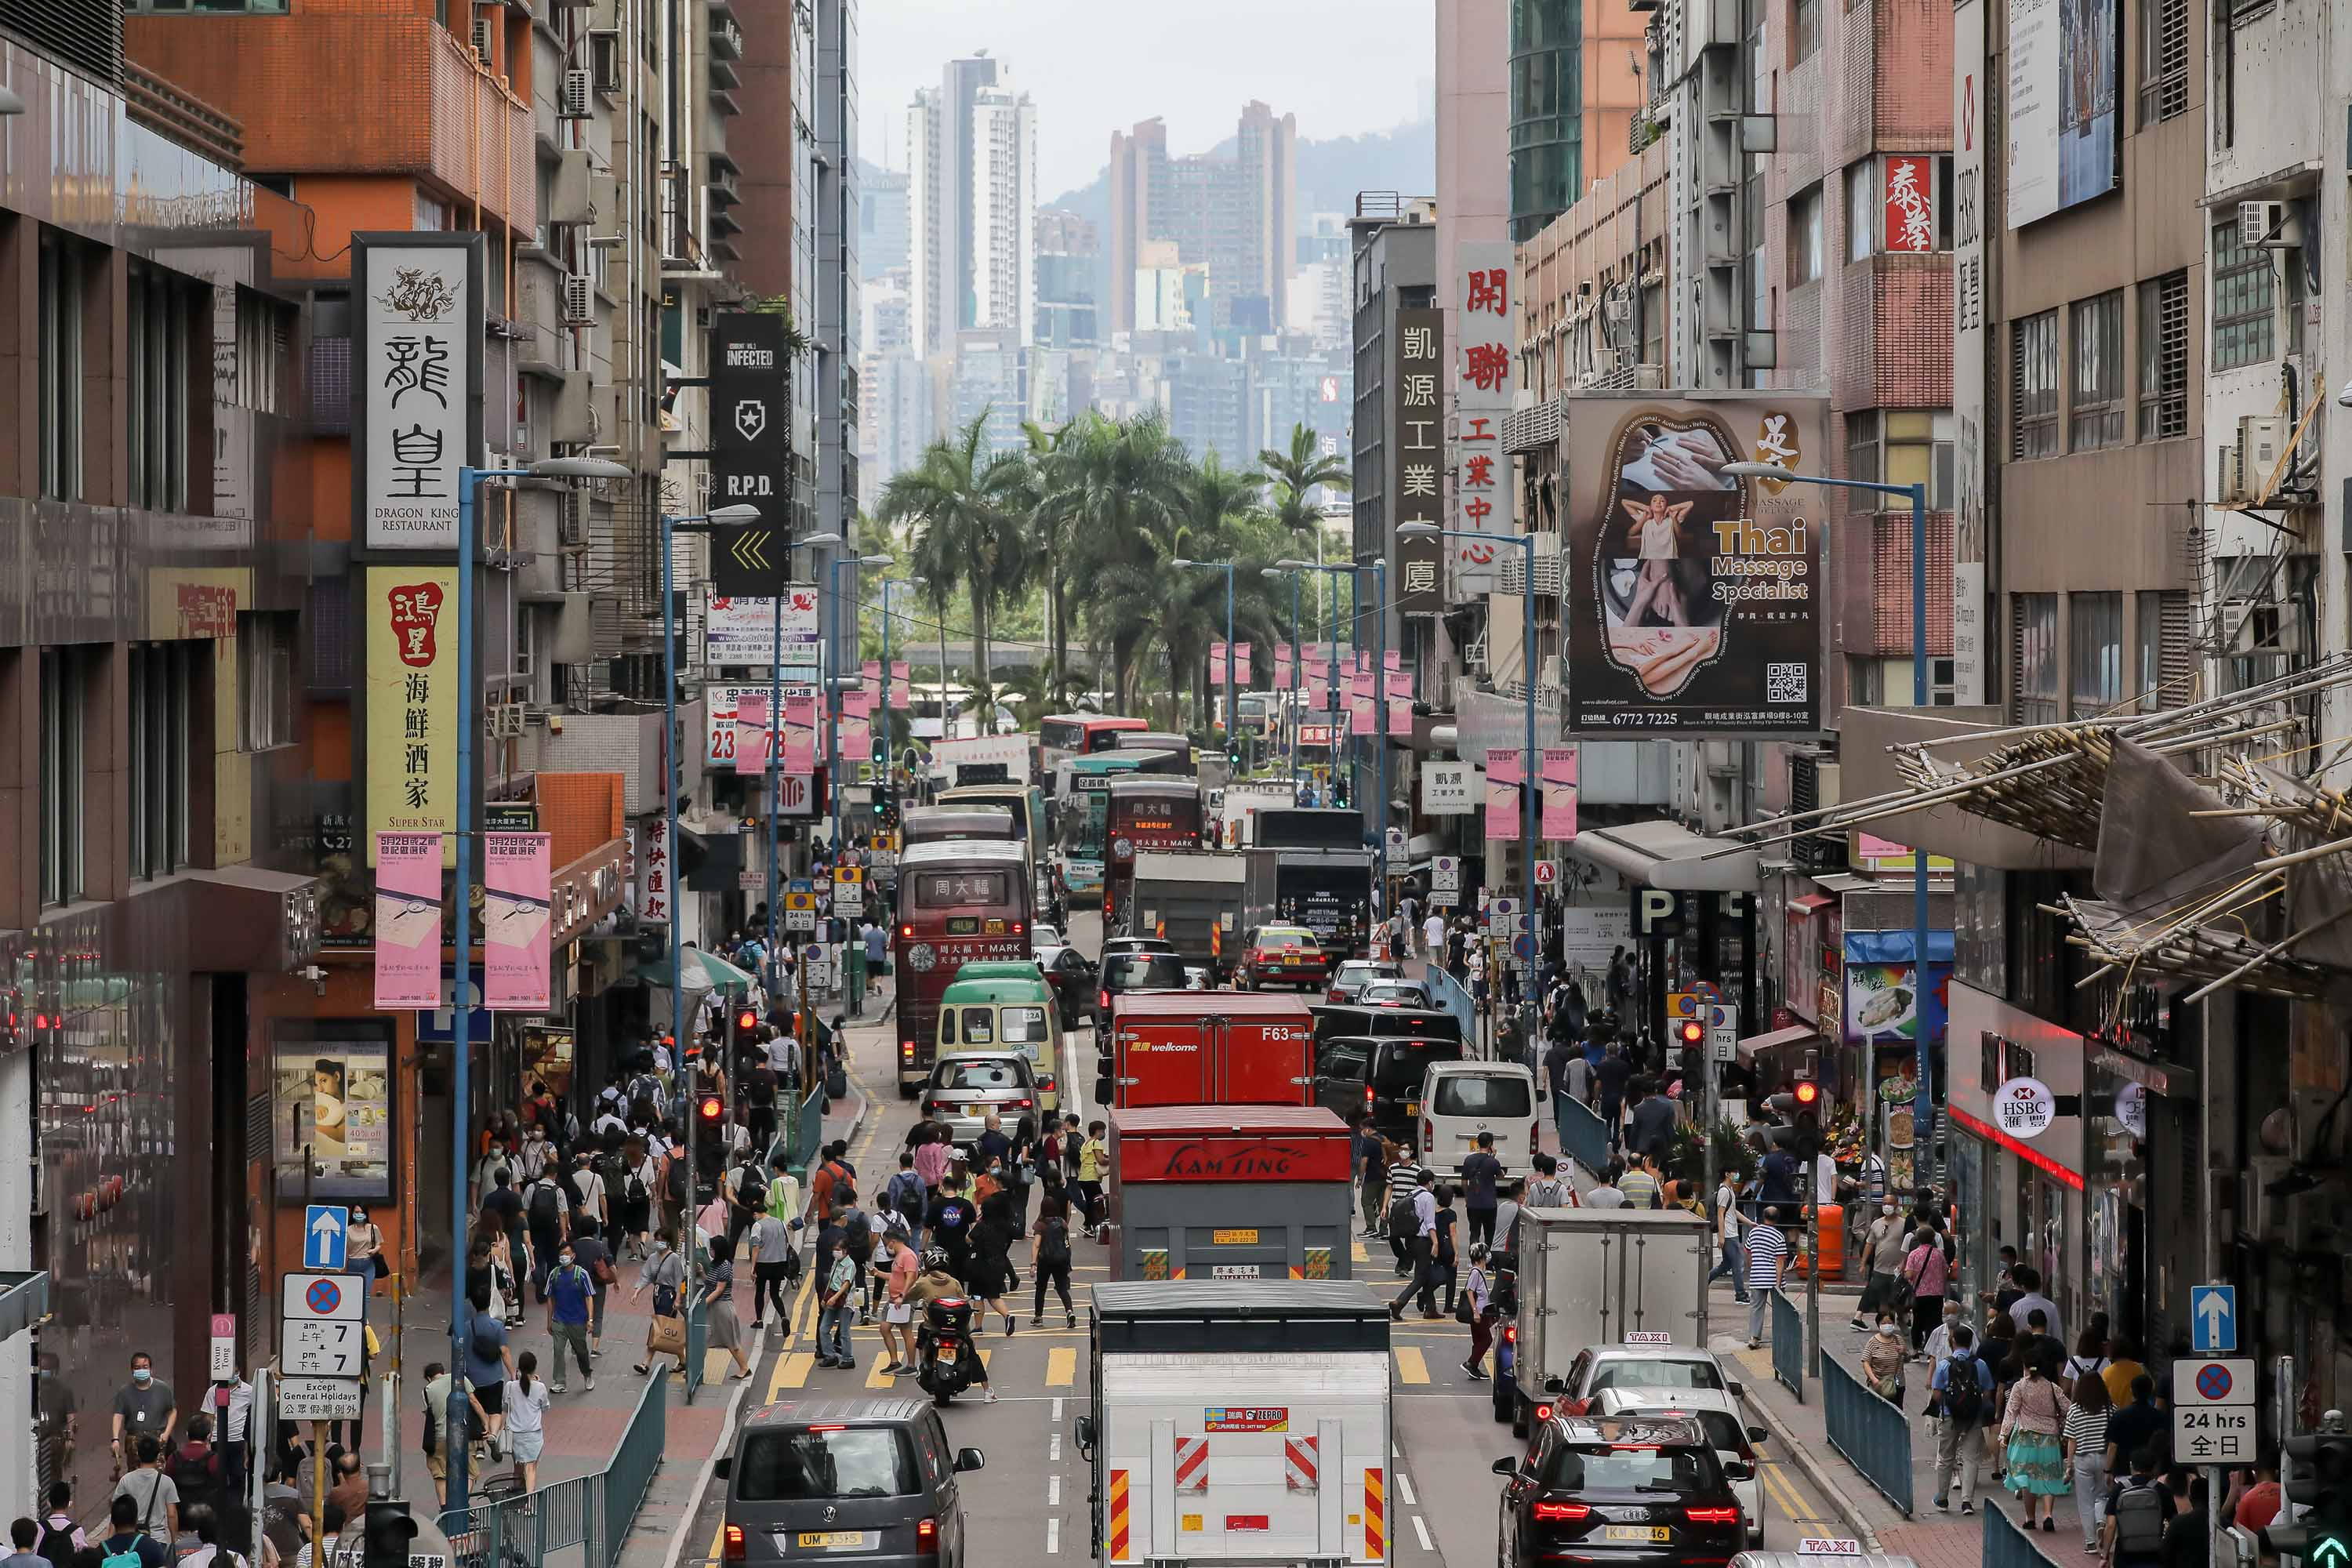 Pedestrians and vehicles make their way along a street in the Kwun Tong district of Hong Kong on May 6.